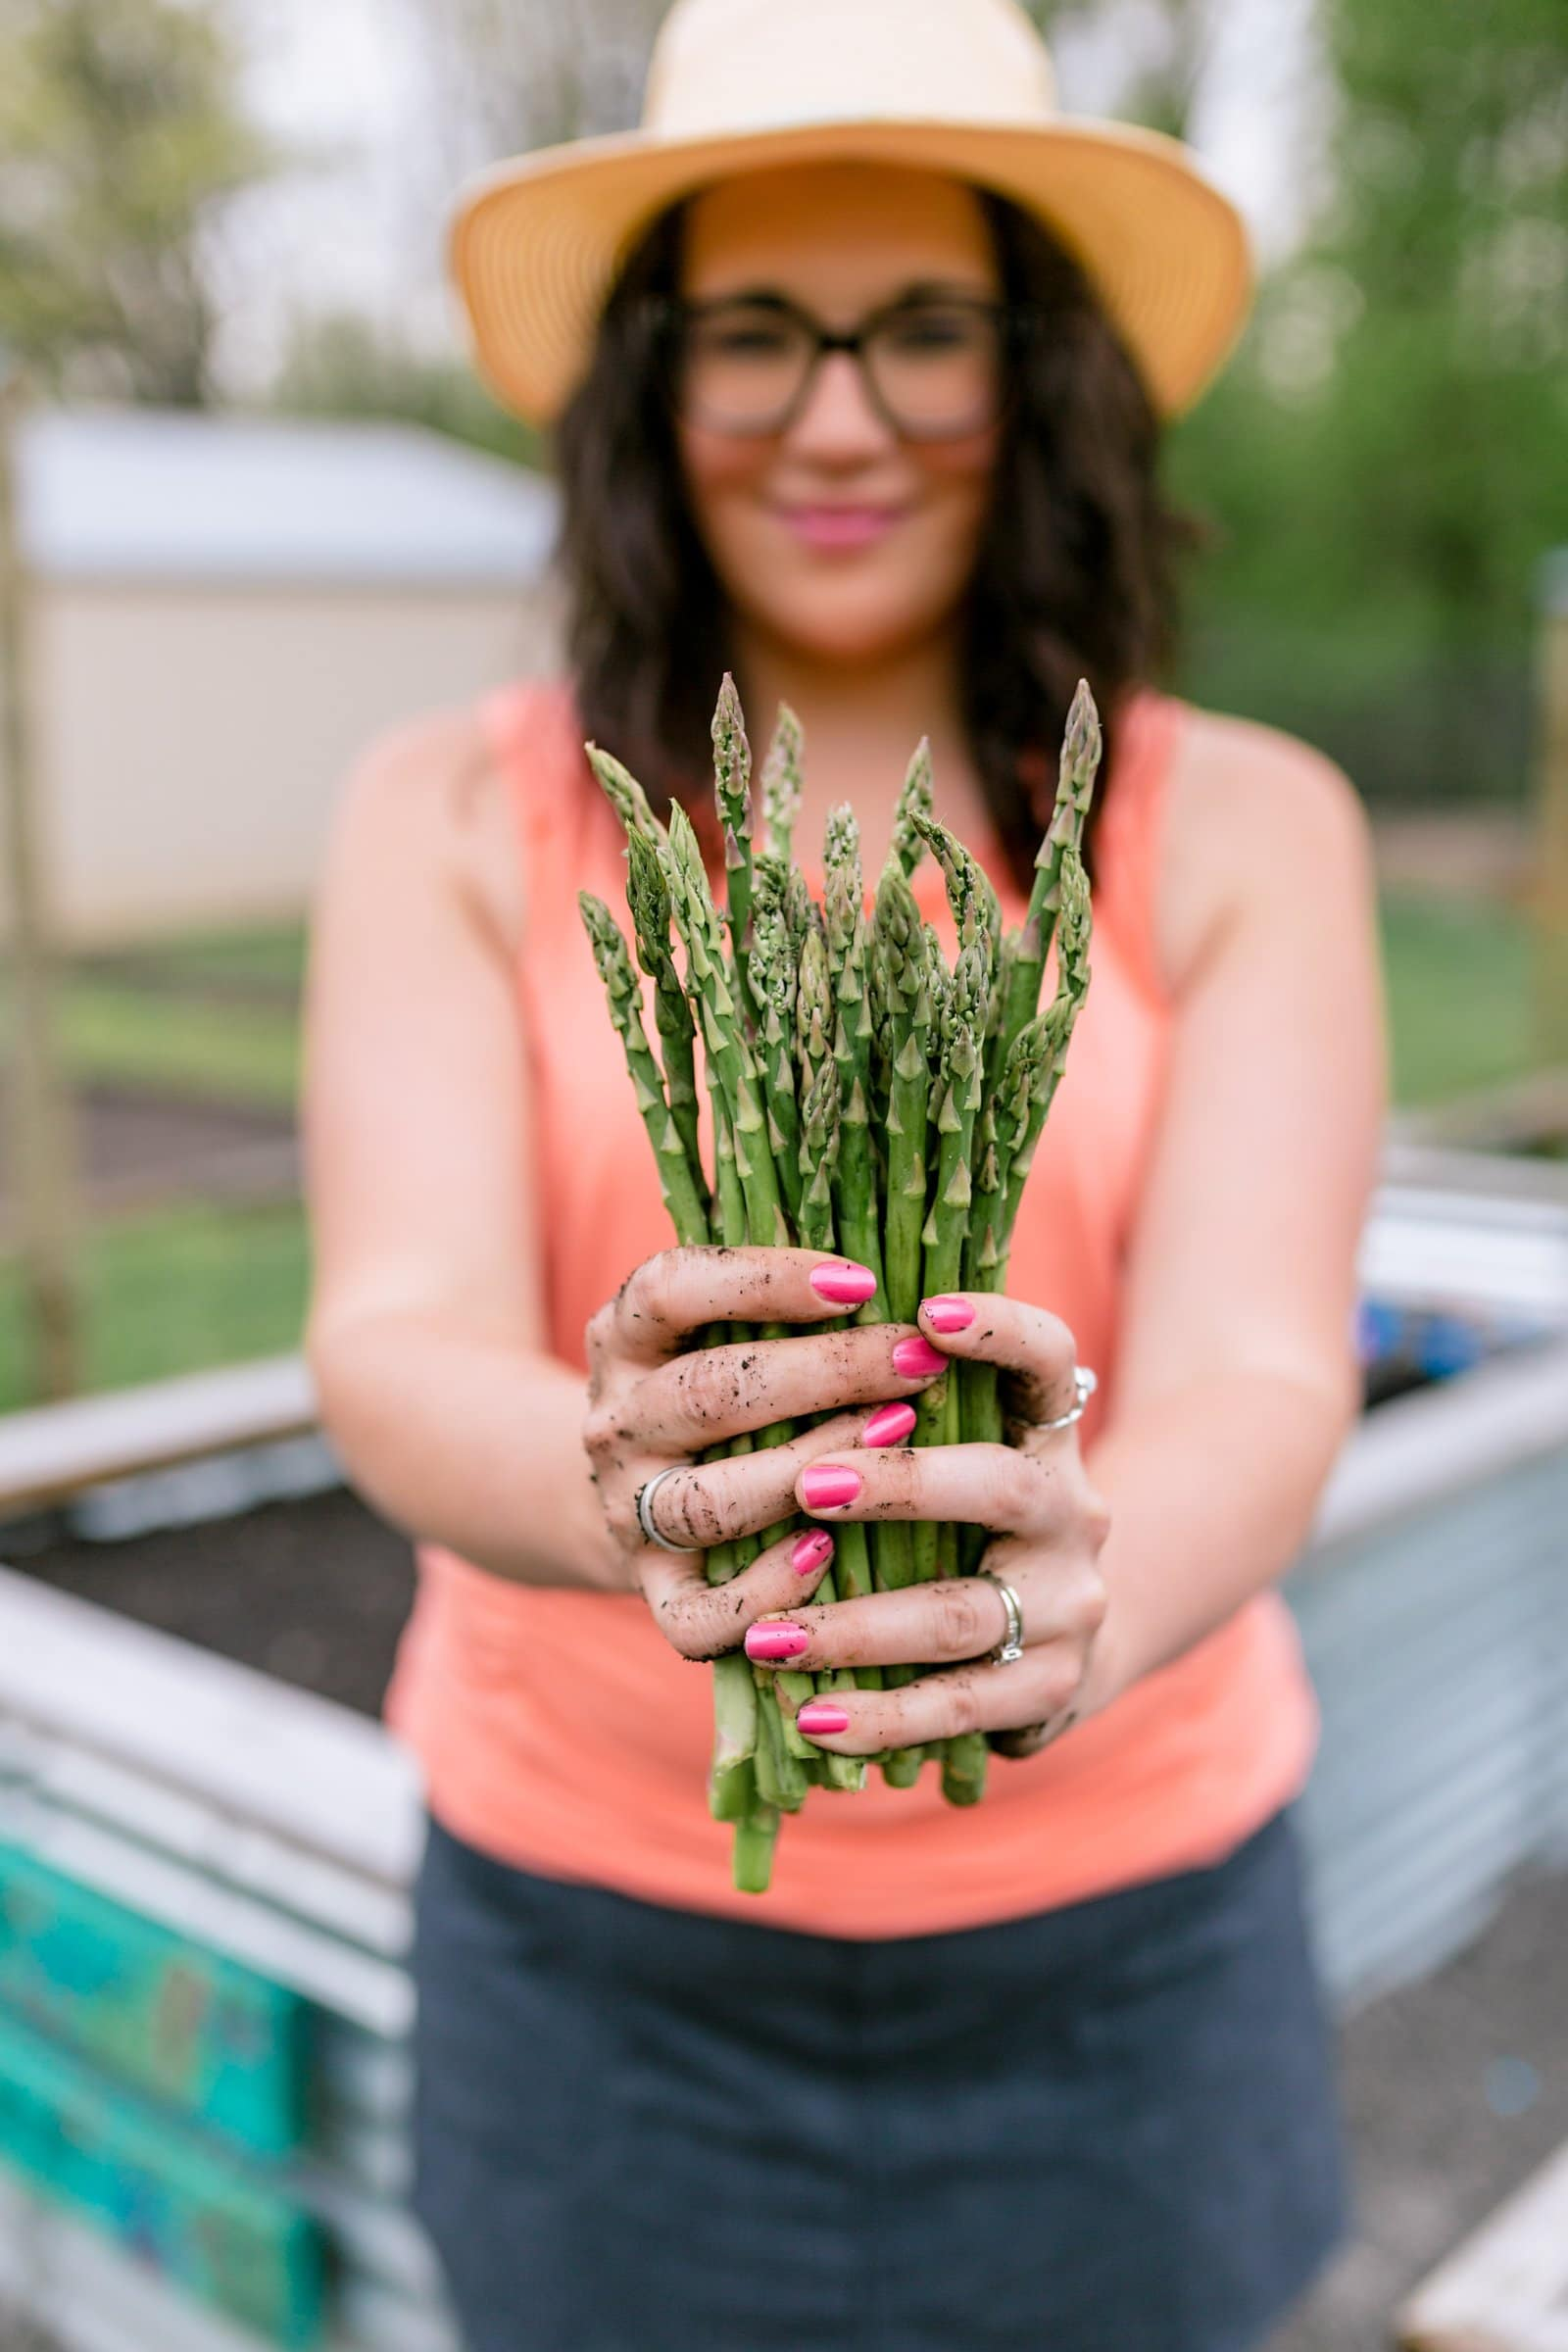 Brunette woman in a coral shirt holding out a bunch of asparagus in a garden